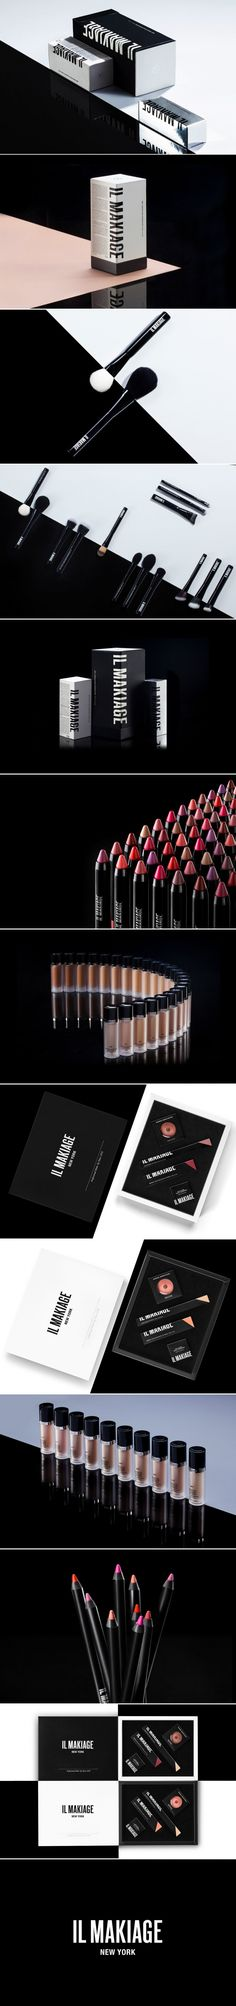 Il Makiage Cosmetics Gets a Bold Look — The Dieline | Packaging & Branding Design & Innovation News